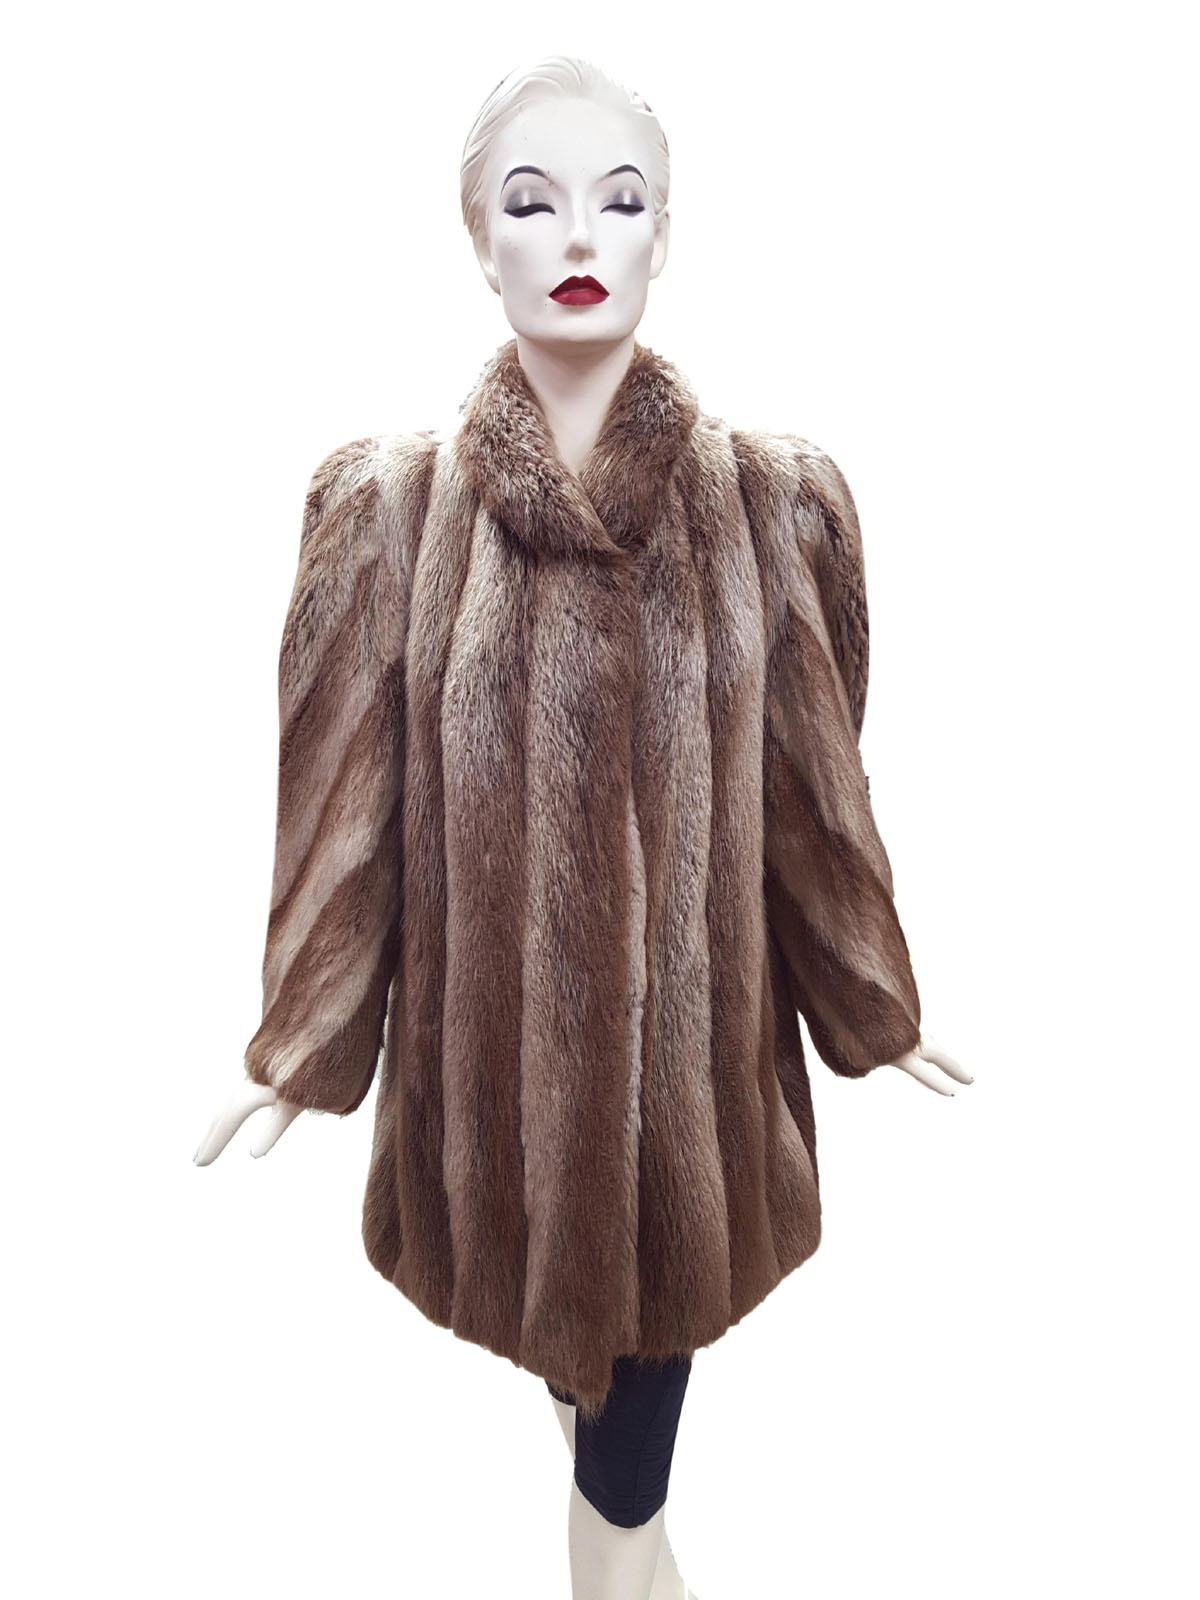 Blonde Long Hair Beaver 3/4 Coat with Diagonal Sleeve Design